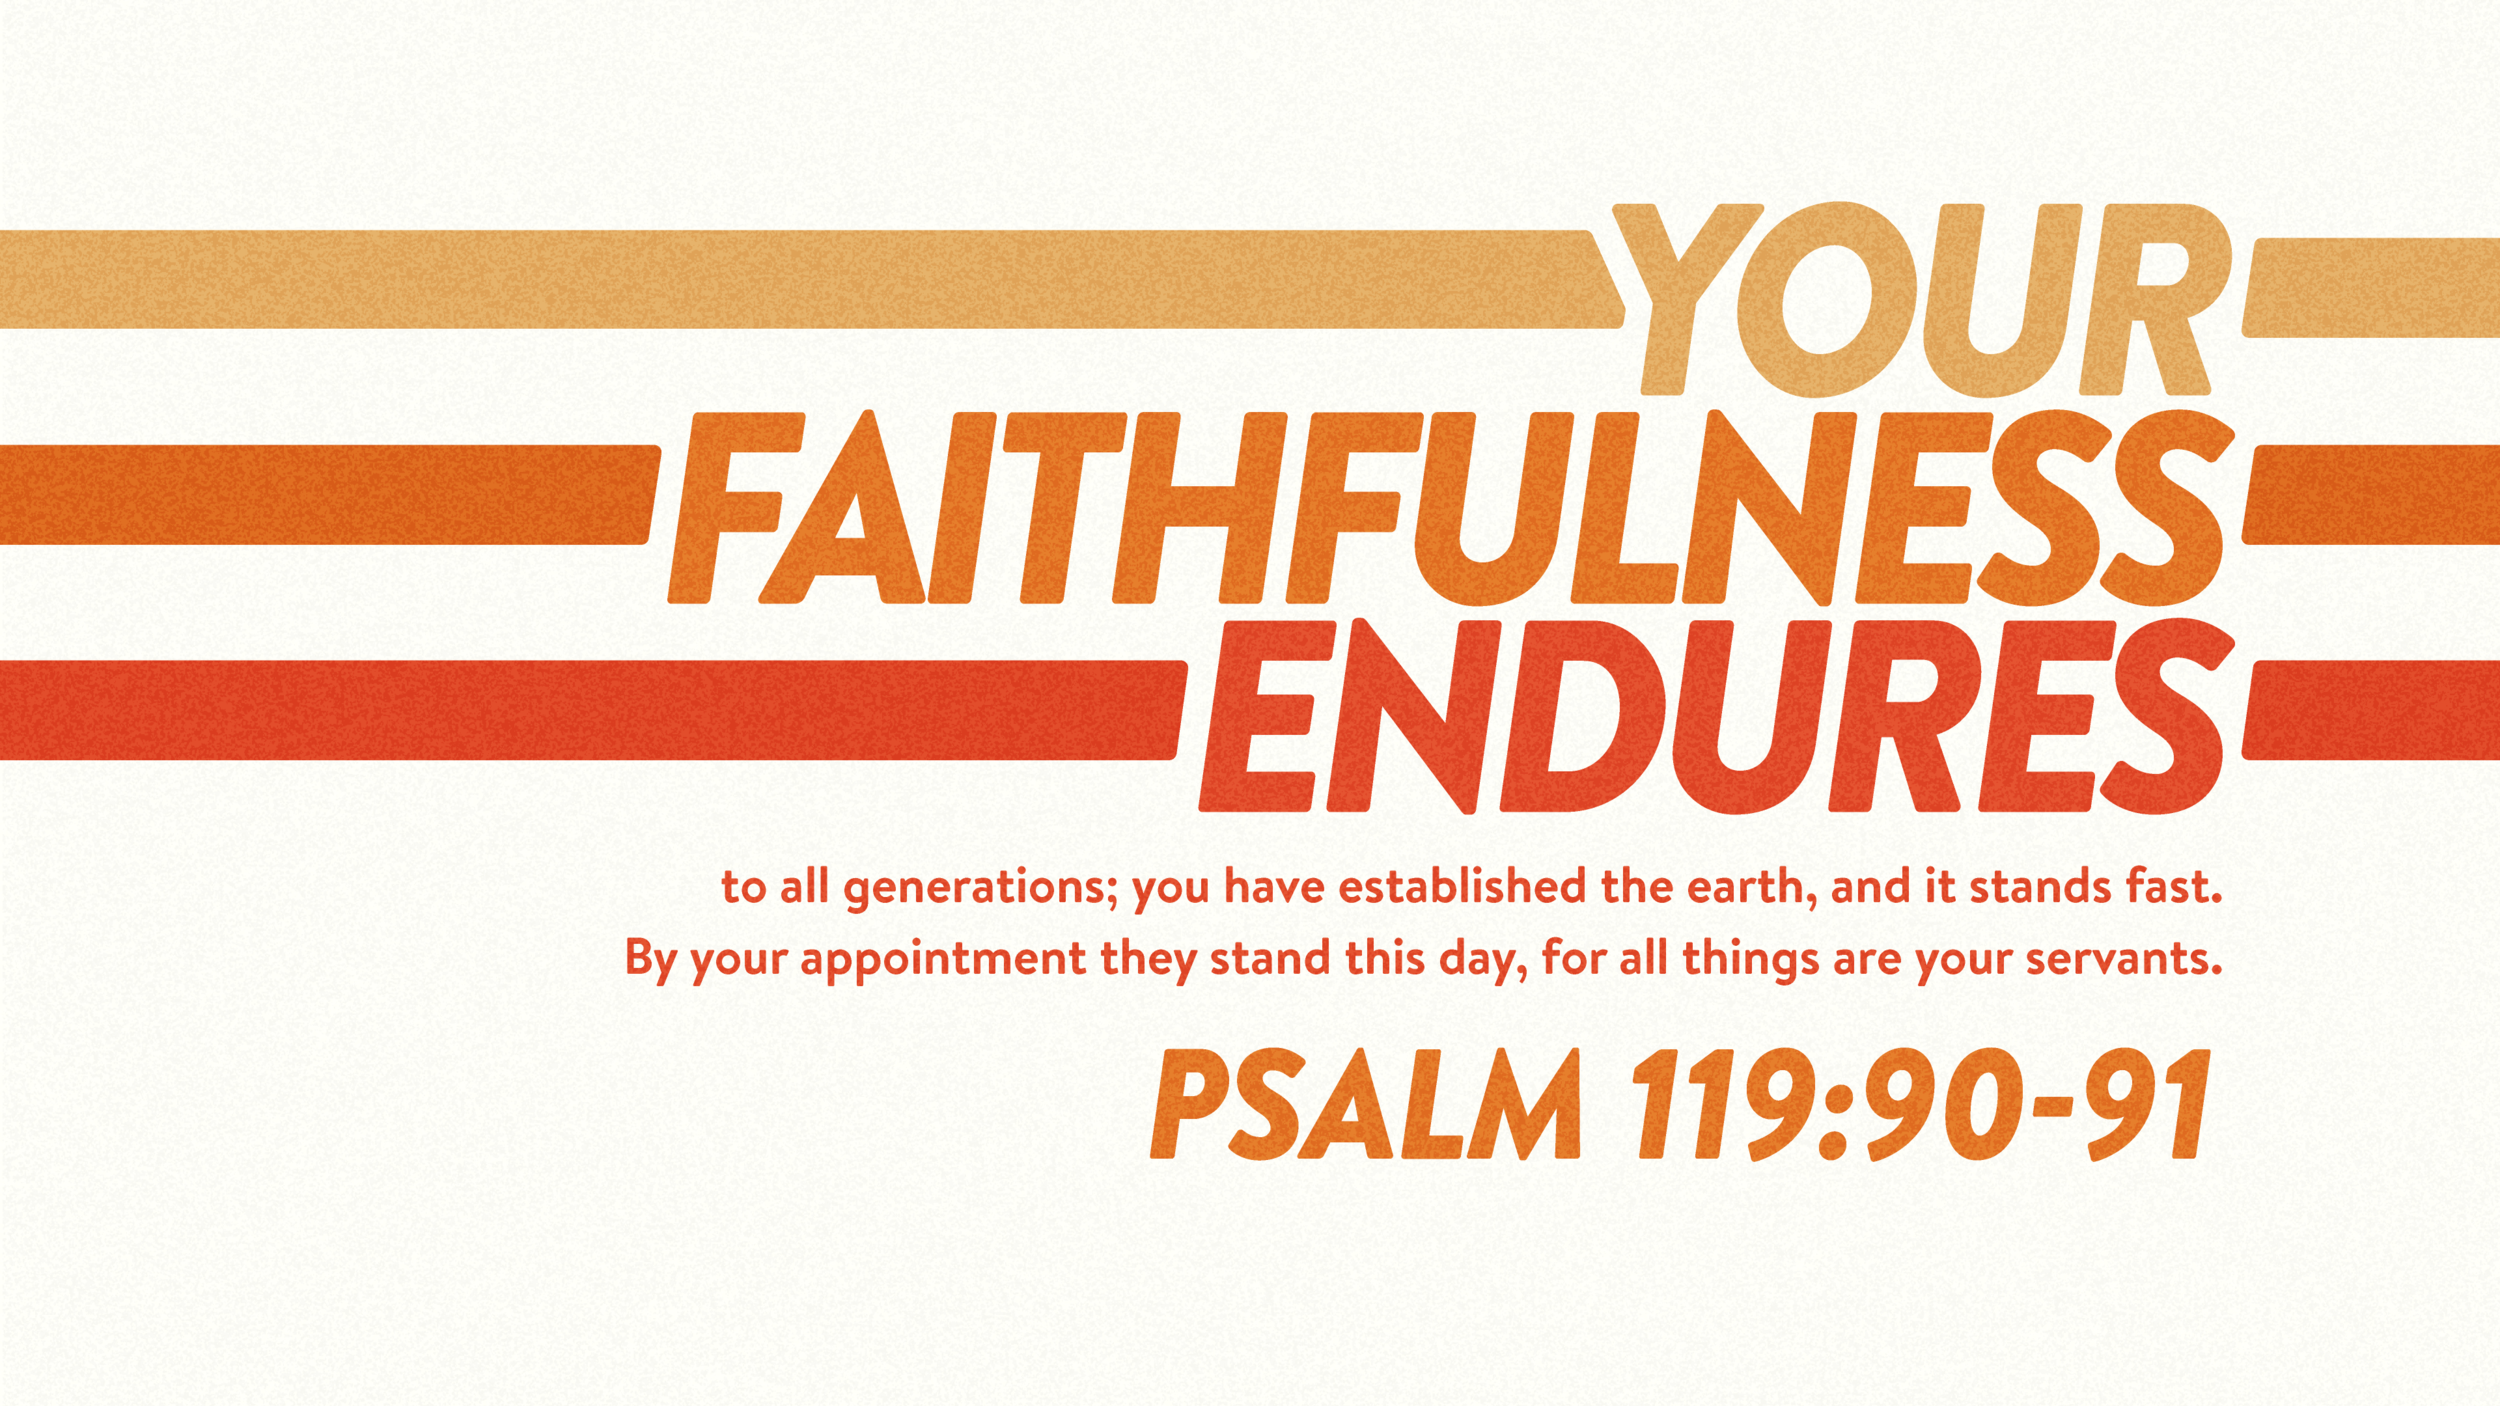 Psalm_119_90-91-3840x2160.png